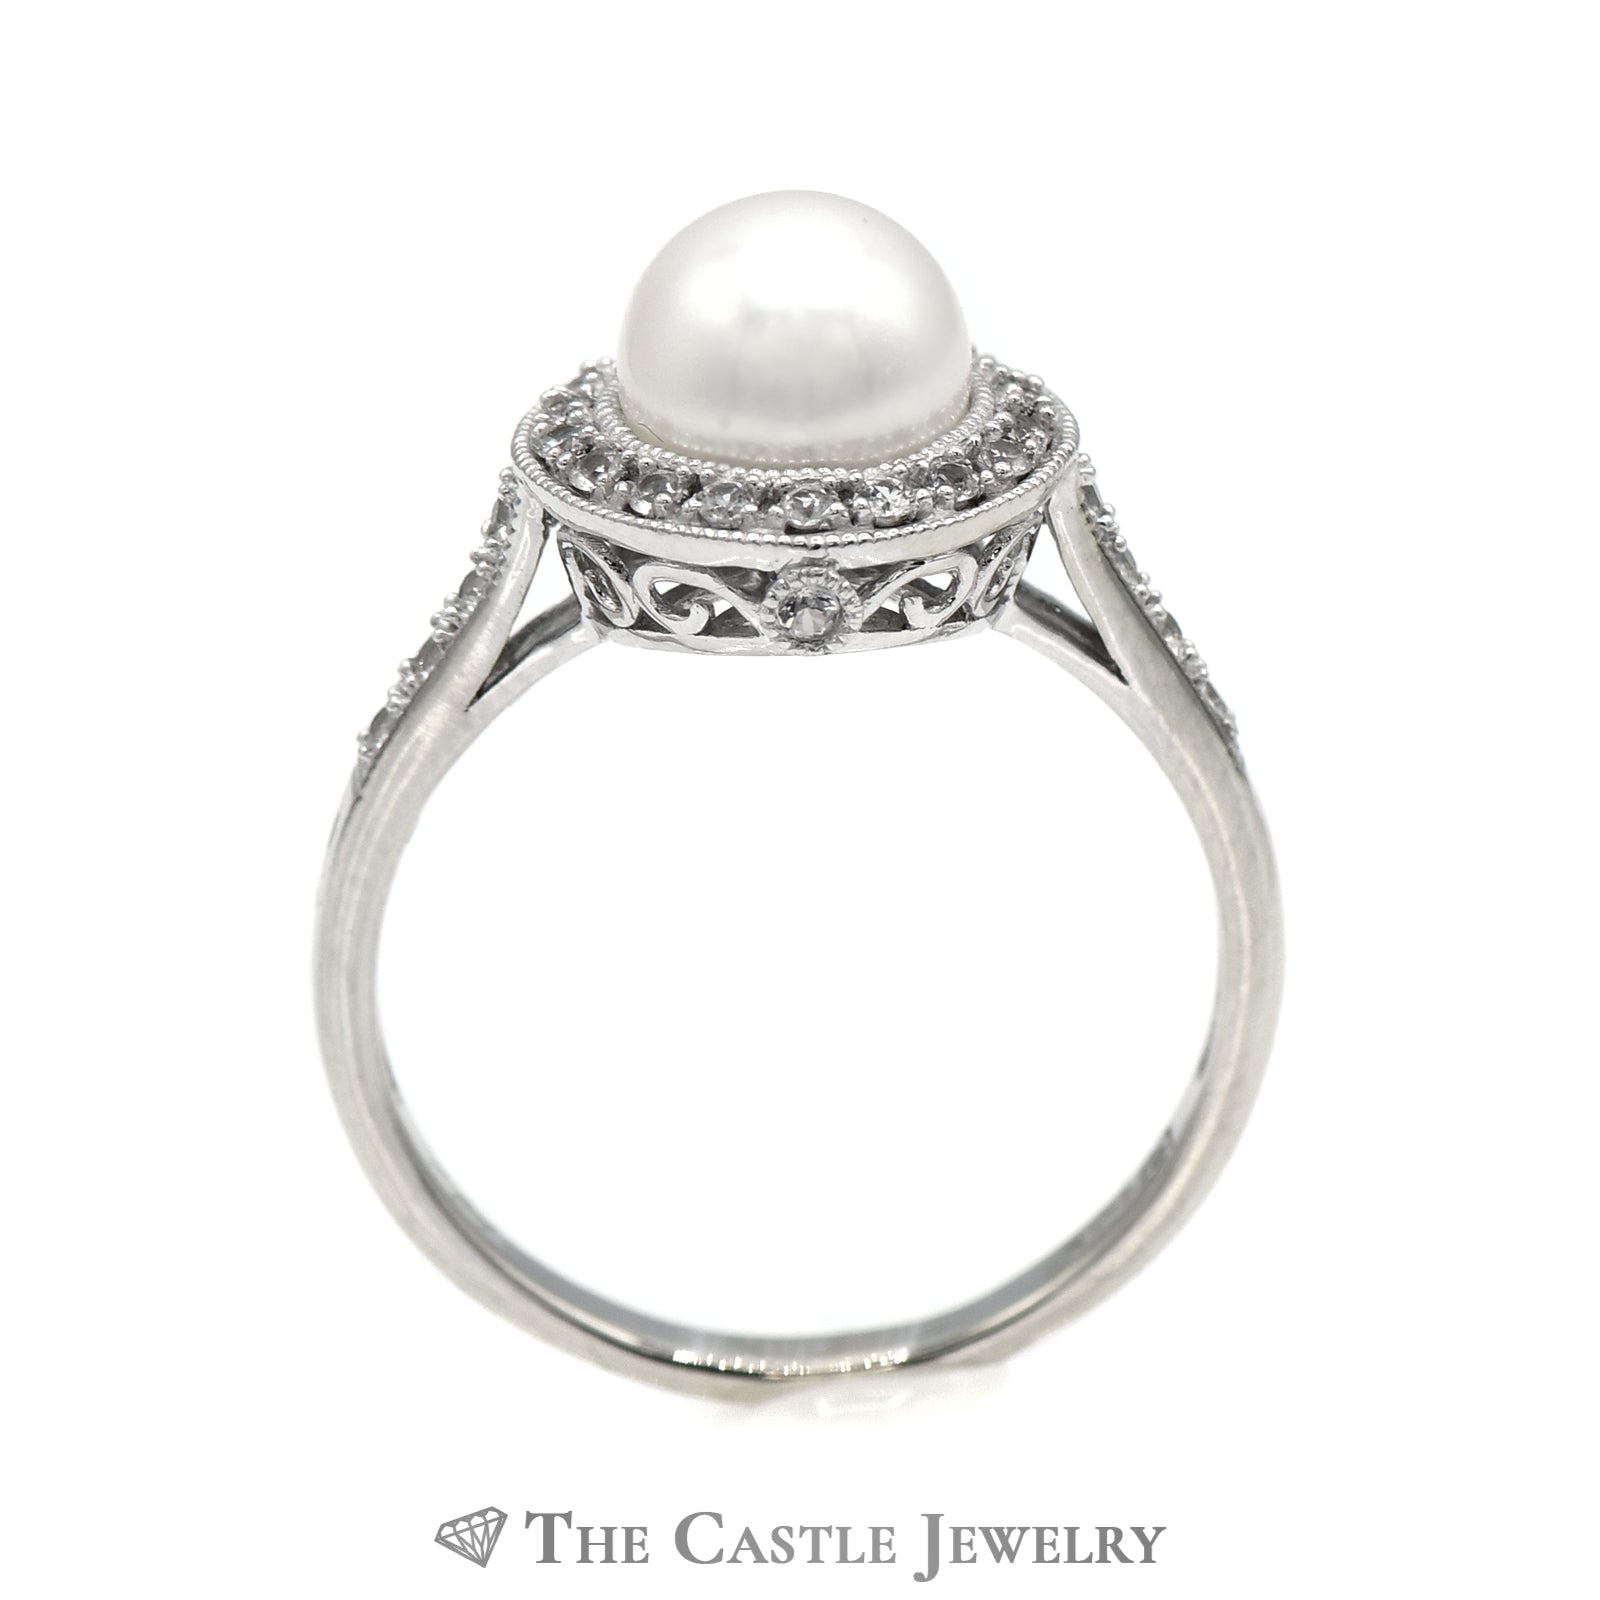 8mm Pearl Ring with White Topaz Halo & Accents in 14k White Gold-1